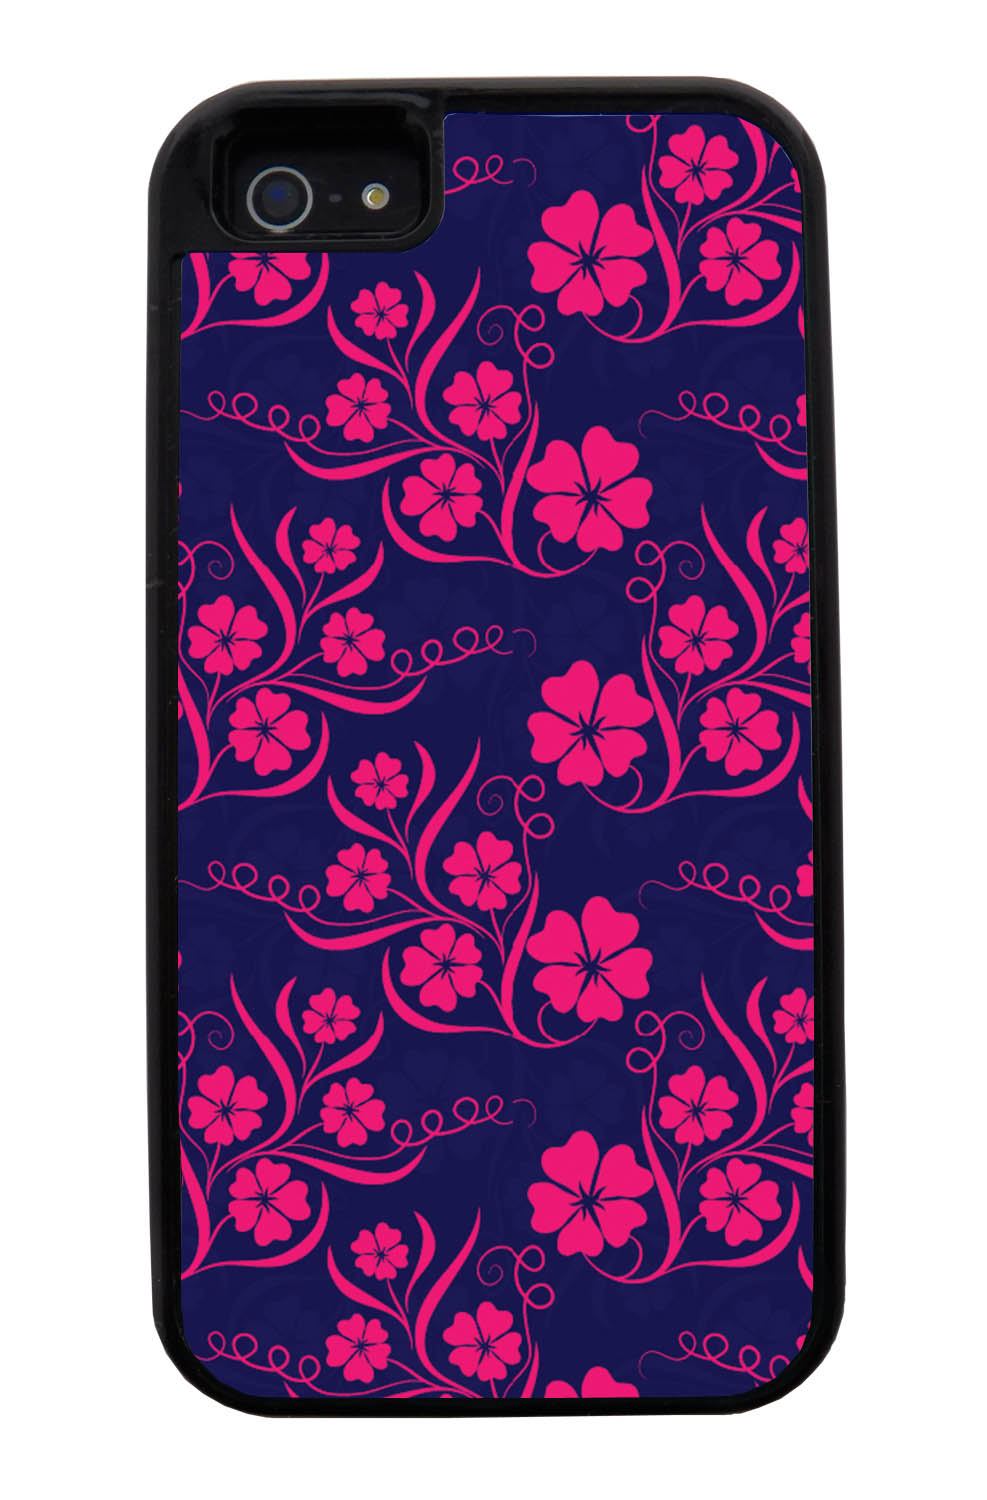 Apple iPhone 5 / 5S Flower Case - Hot Pink on Navy Blue - Stencil Cutout - Black Tough Hybrid Case